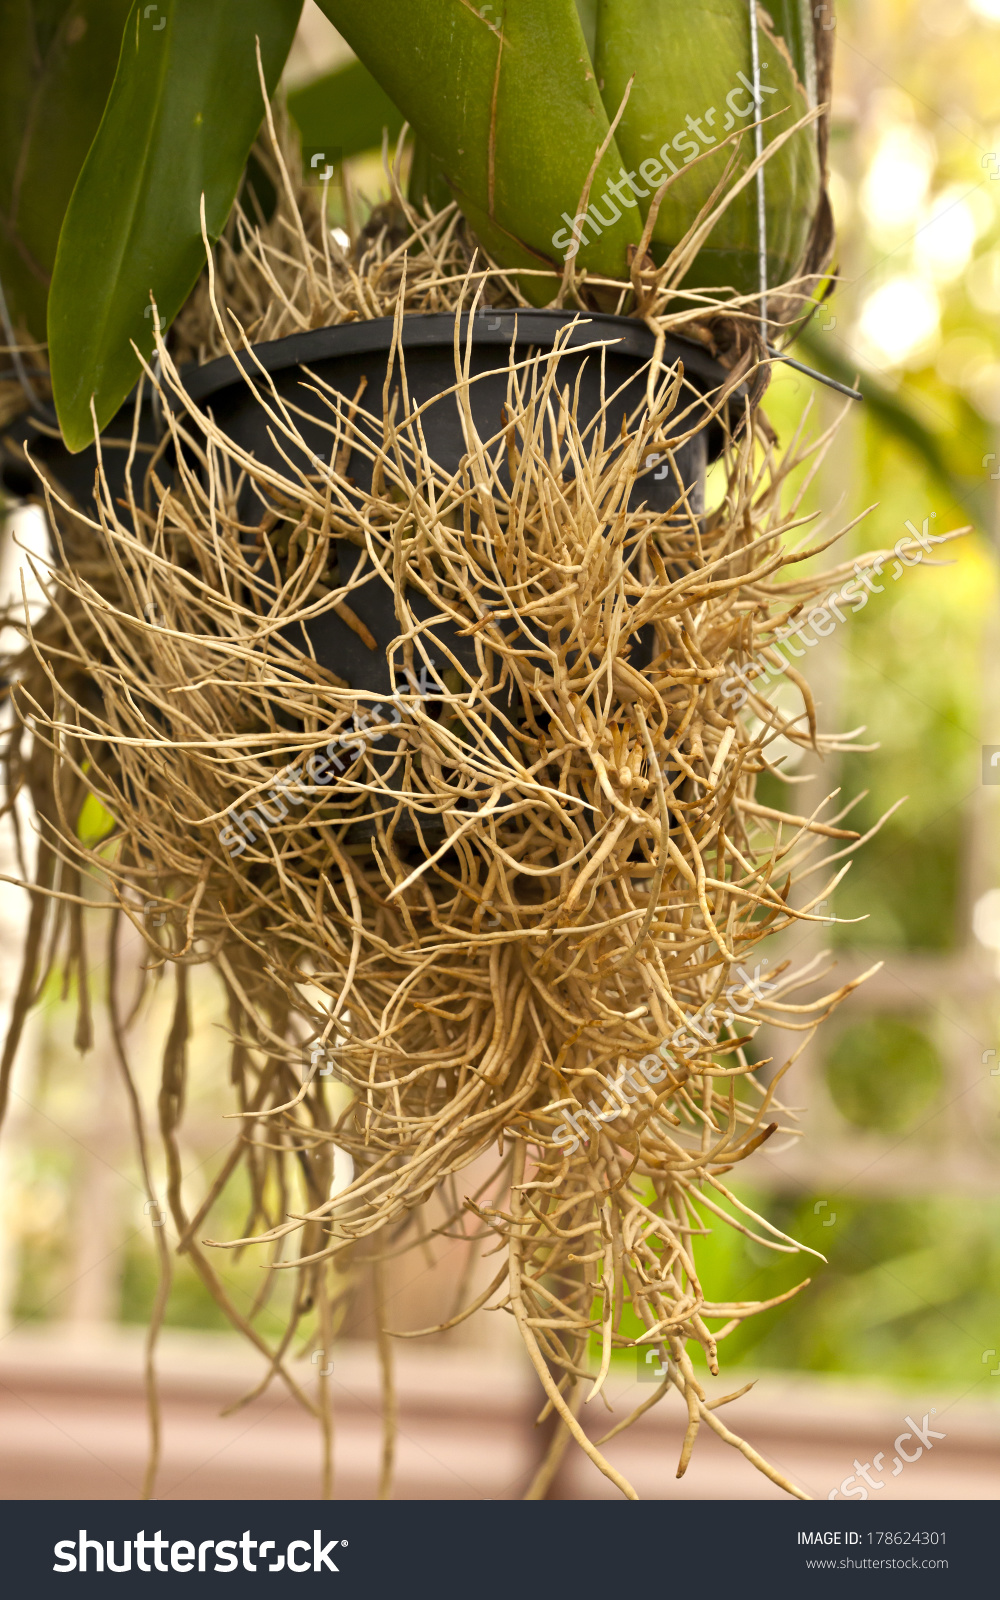 Aerial Roots Orchid Root Plant Root Stock Photo 178624301.